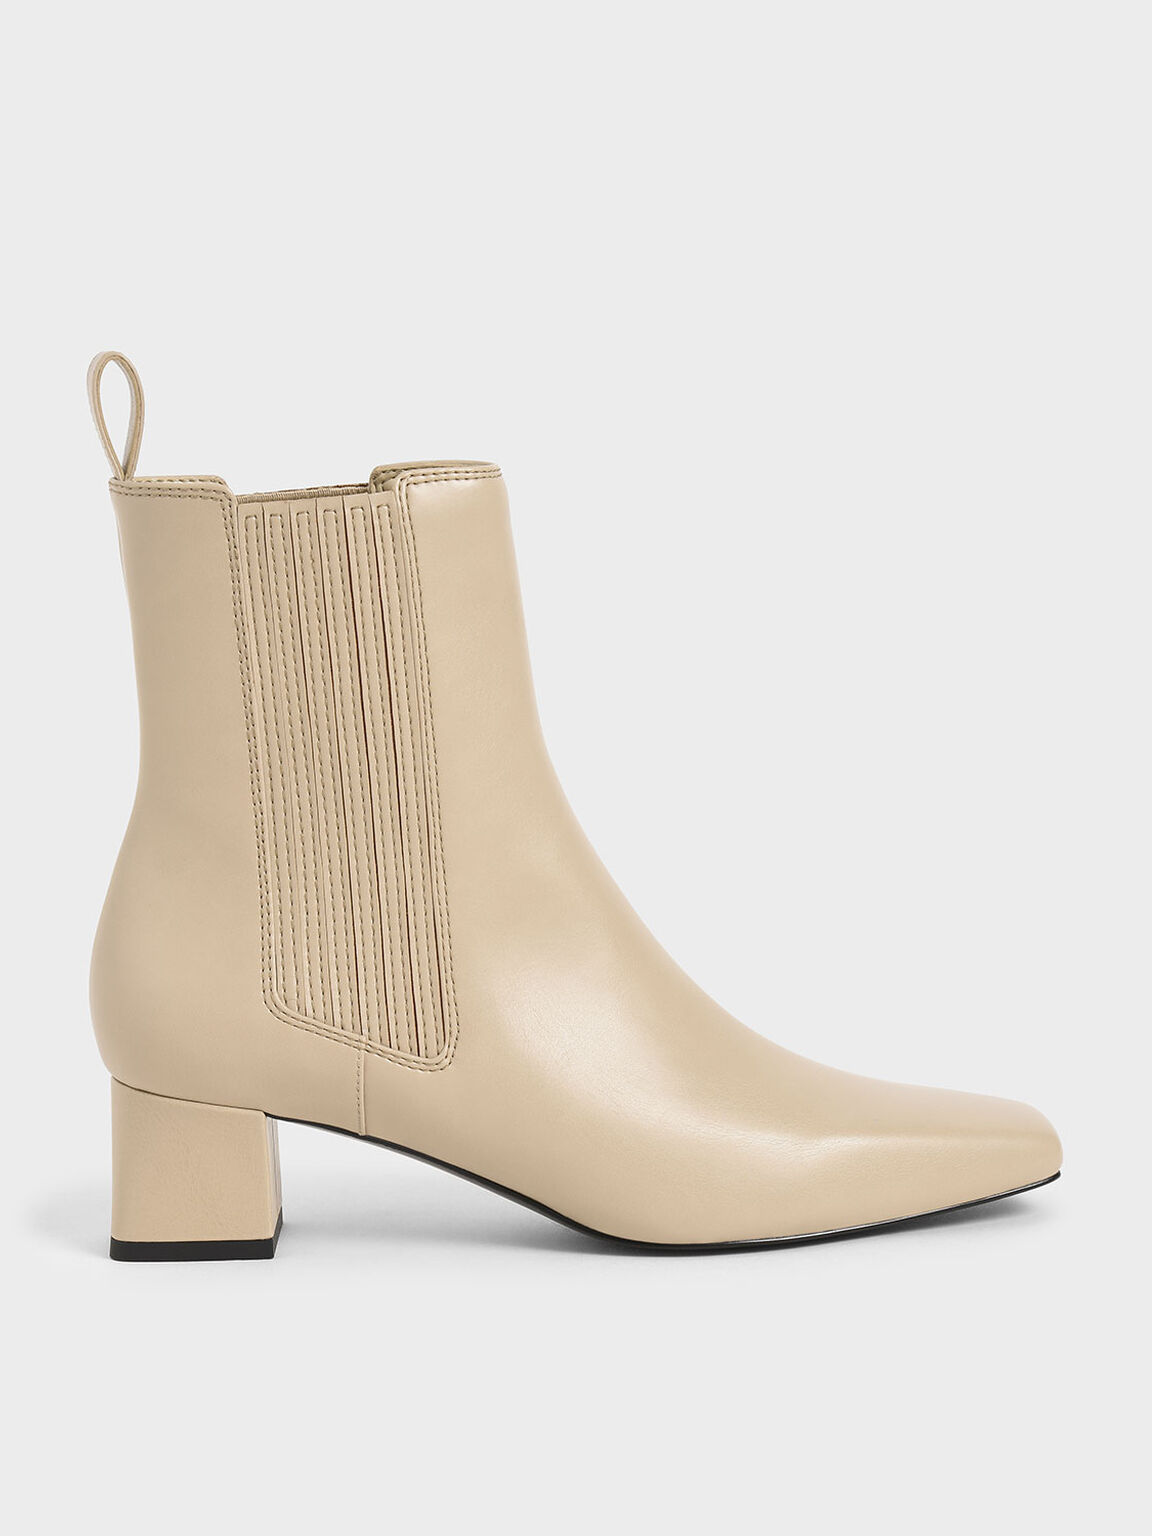 Stitch Trim Ankle Boots, Beige, hi-res